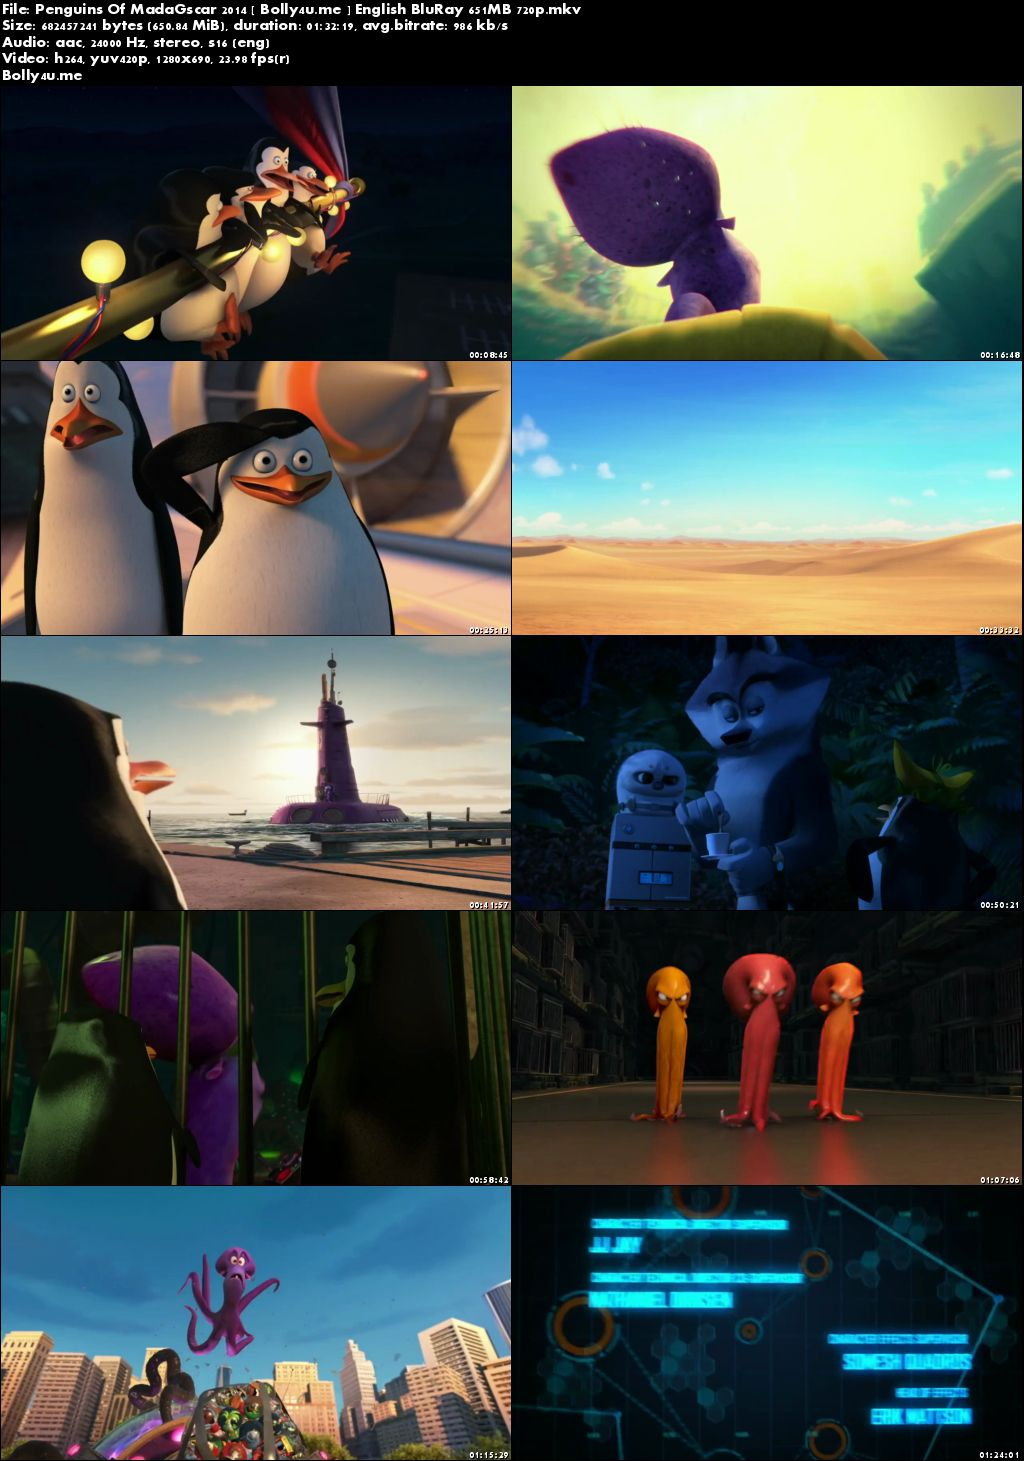 Penguins Of MadaGascar 2014 BluRay 280MB English Movie 480p Download